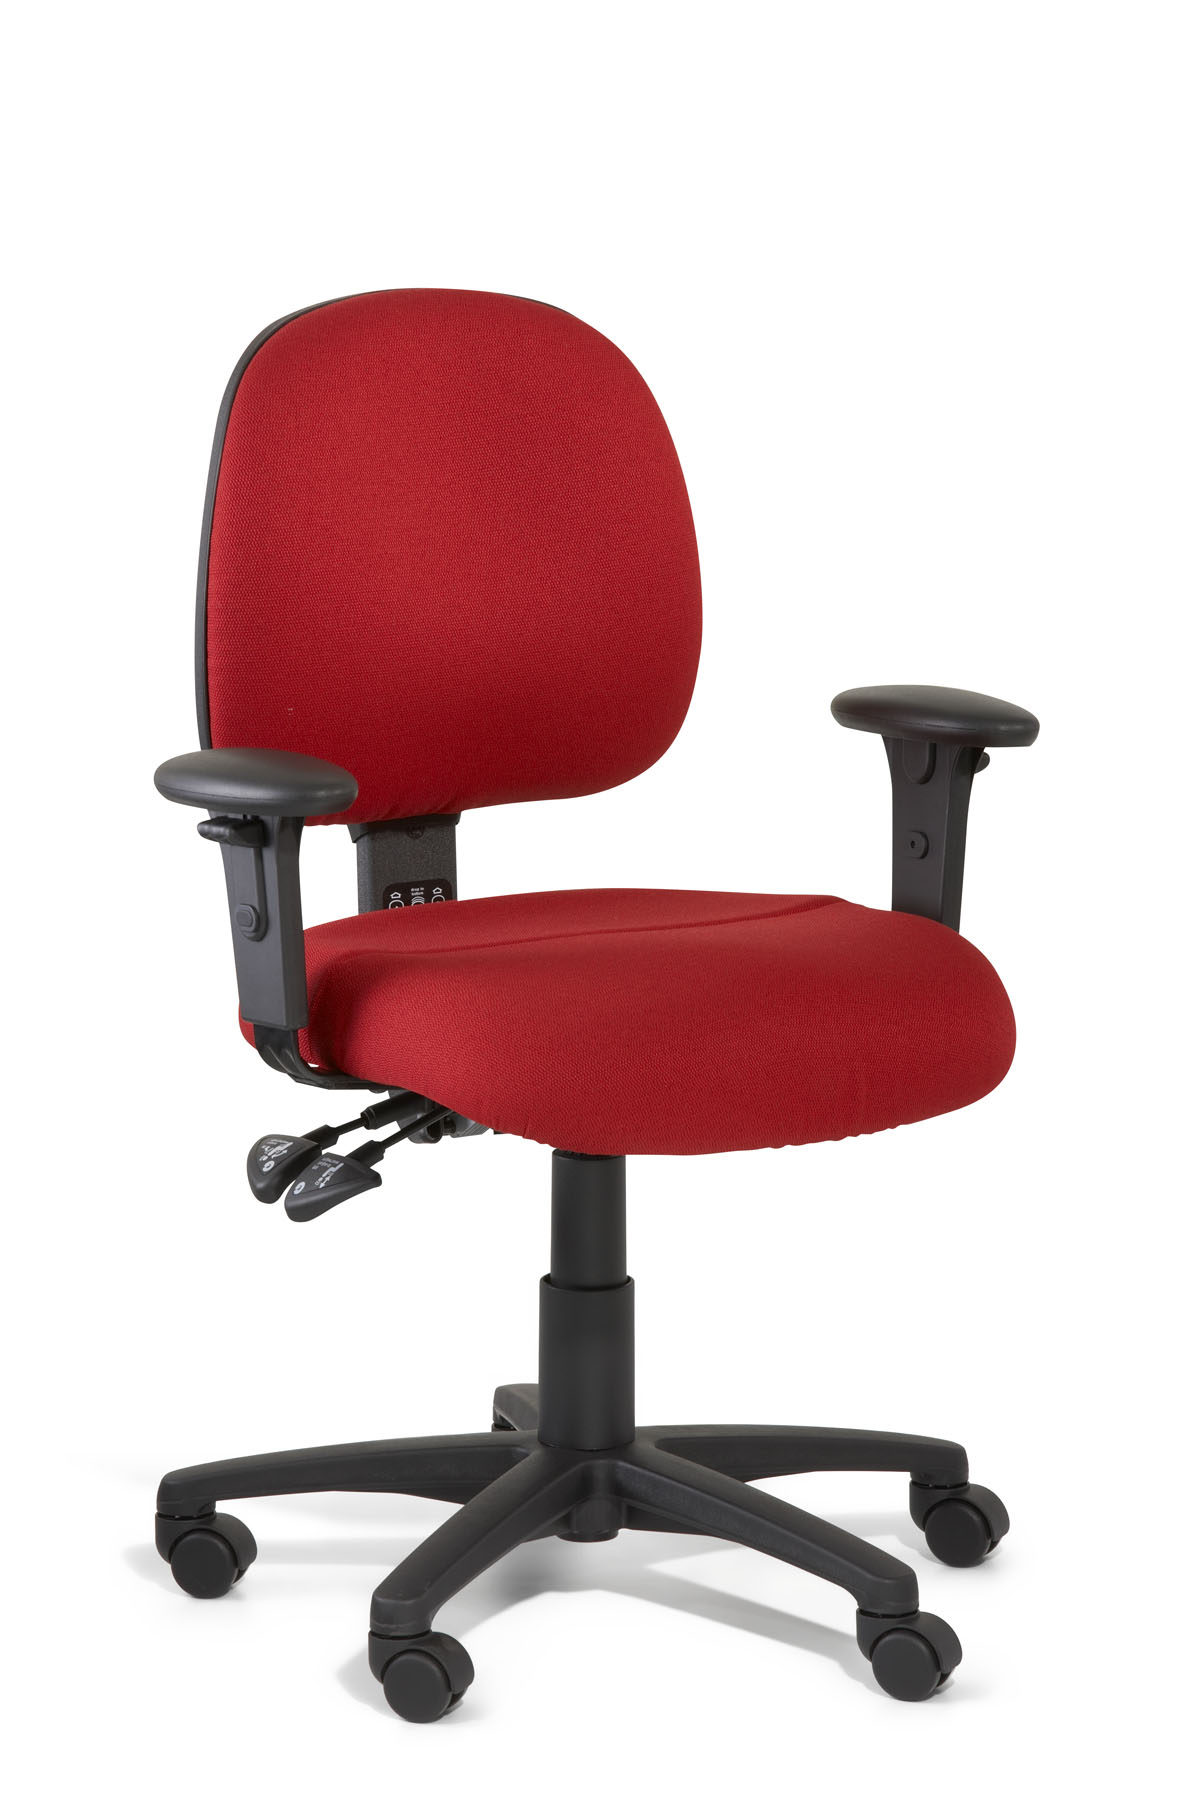 AFRDI Furntech Approved Level 6 fice Chairs from BuyDirect line